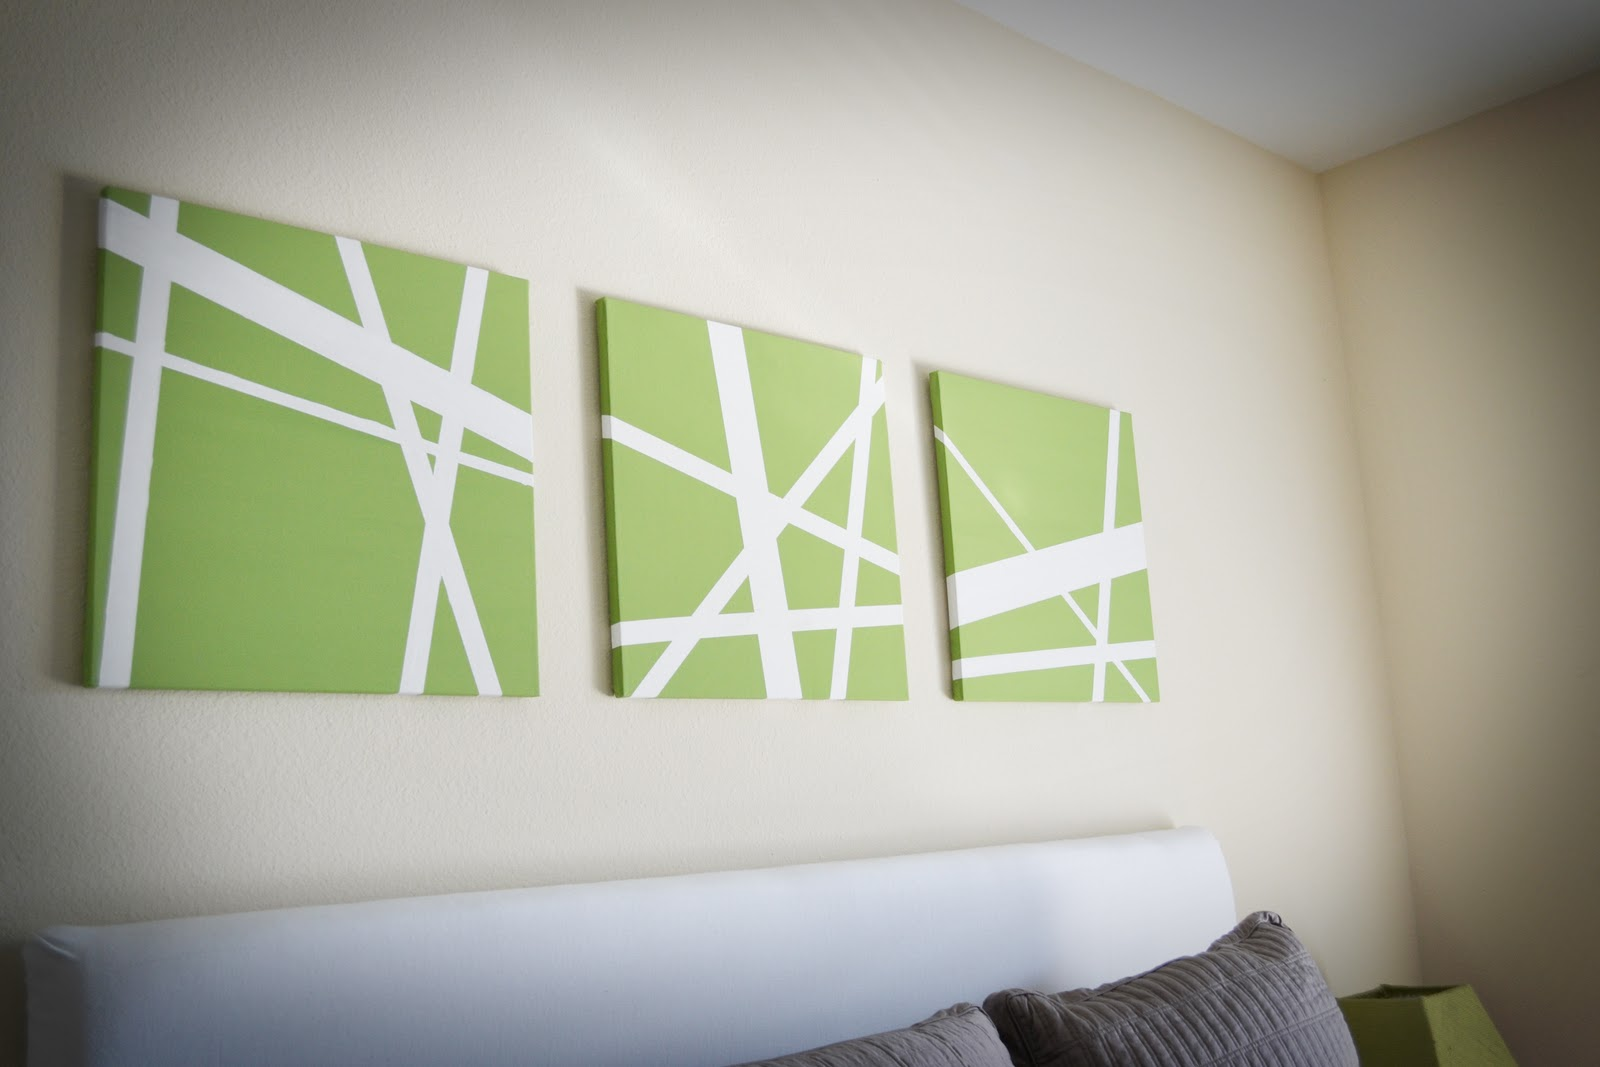 Davis: Day by Day: Super Easy Canvas Art for Easy Wall Painting Ideas With Tape  54lyp